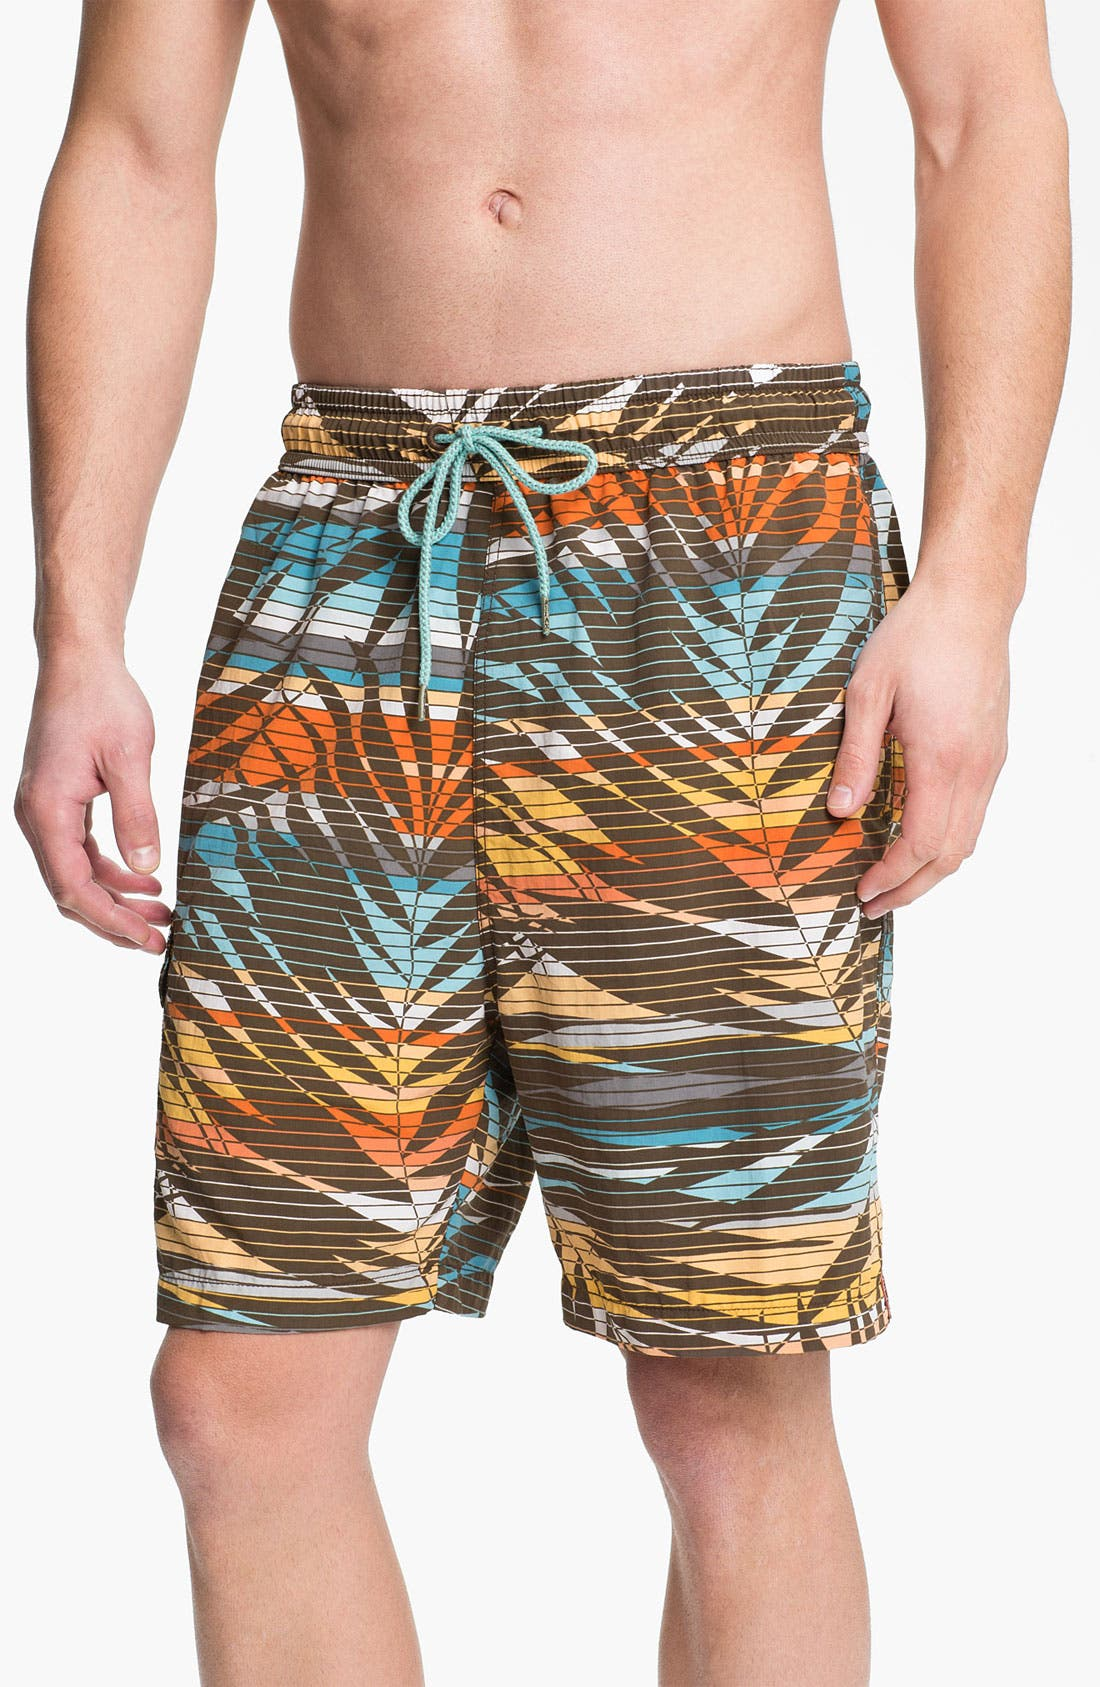 Main Image - Tommy Bahama 'Fern Baby Fern' Swim Trunks (Big & Tall) (Online Only)